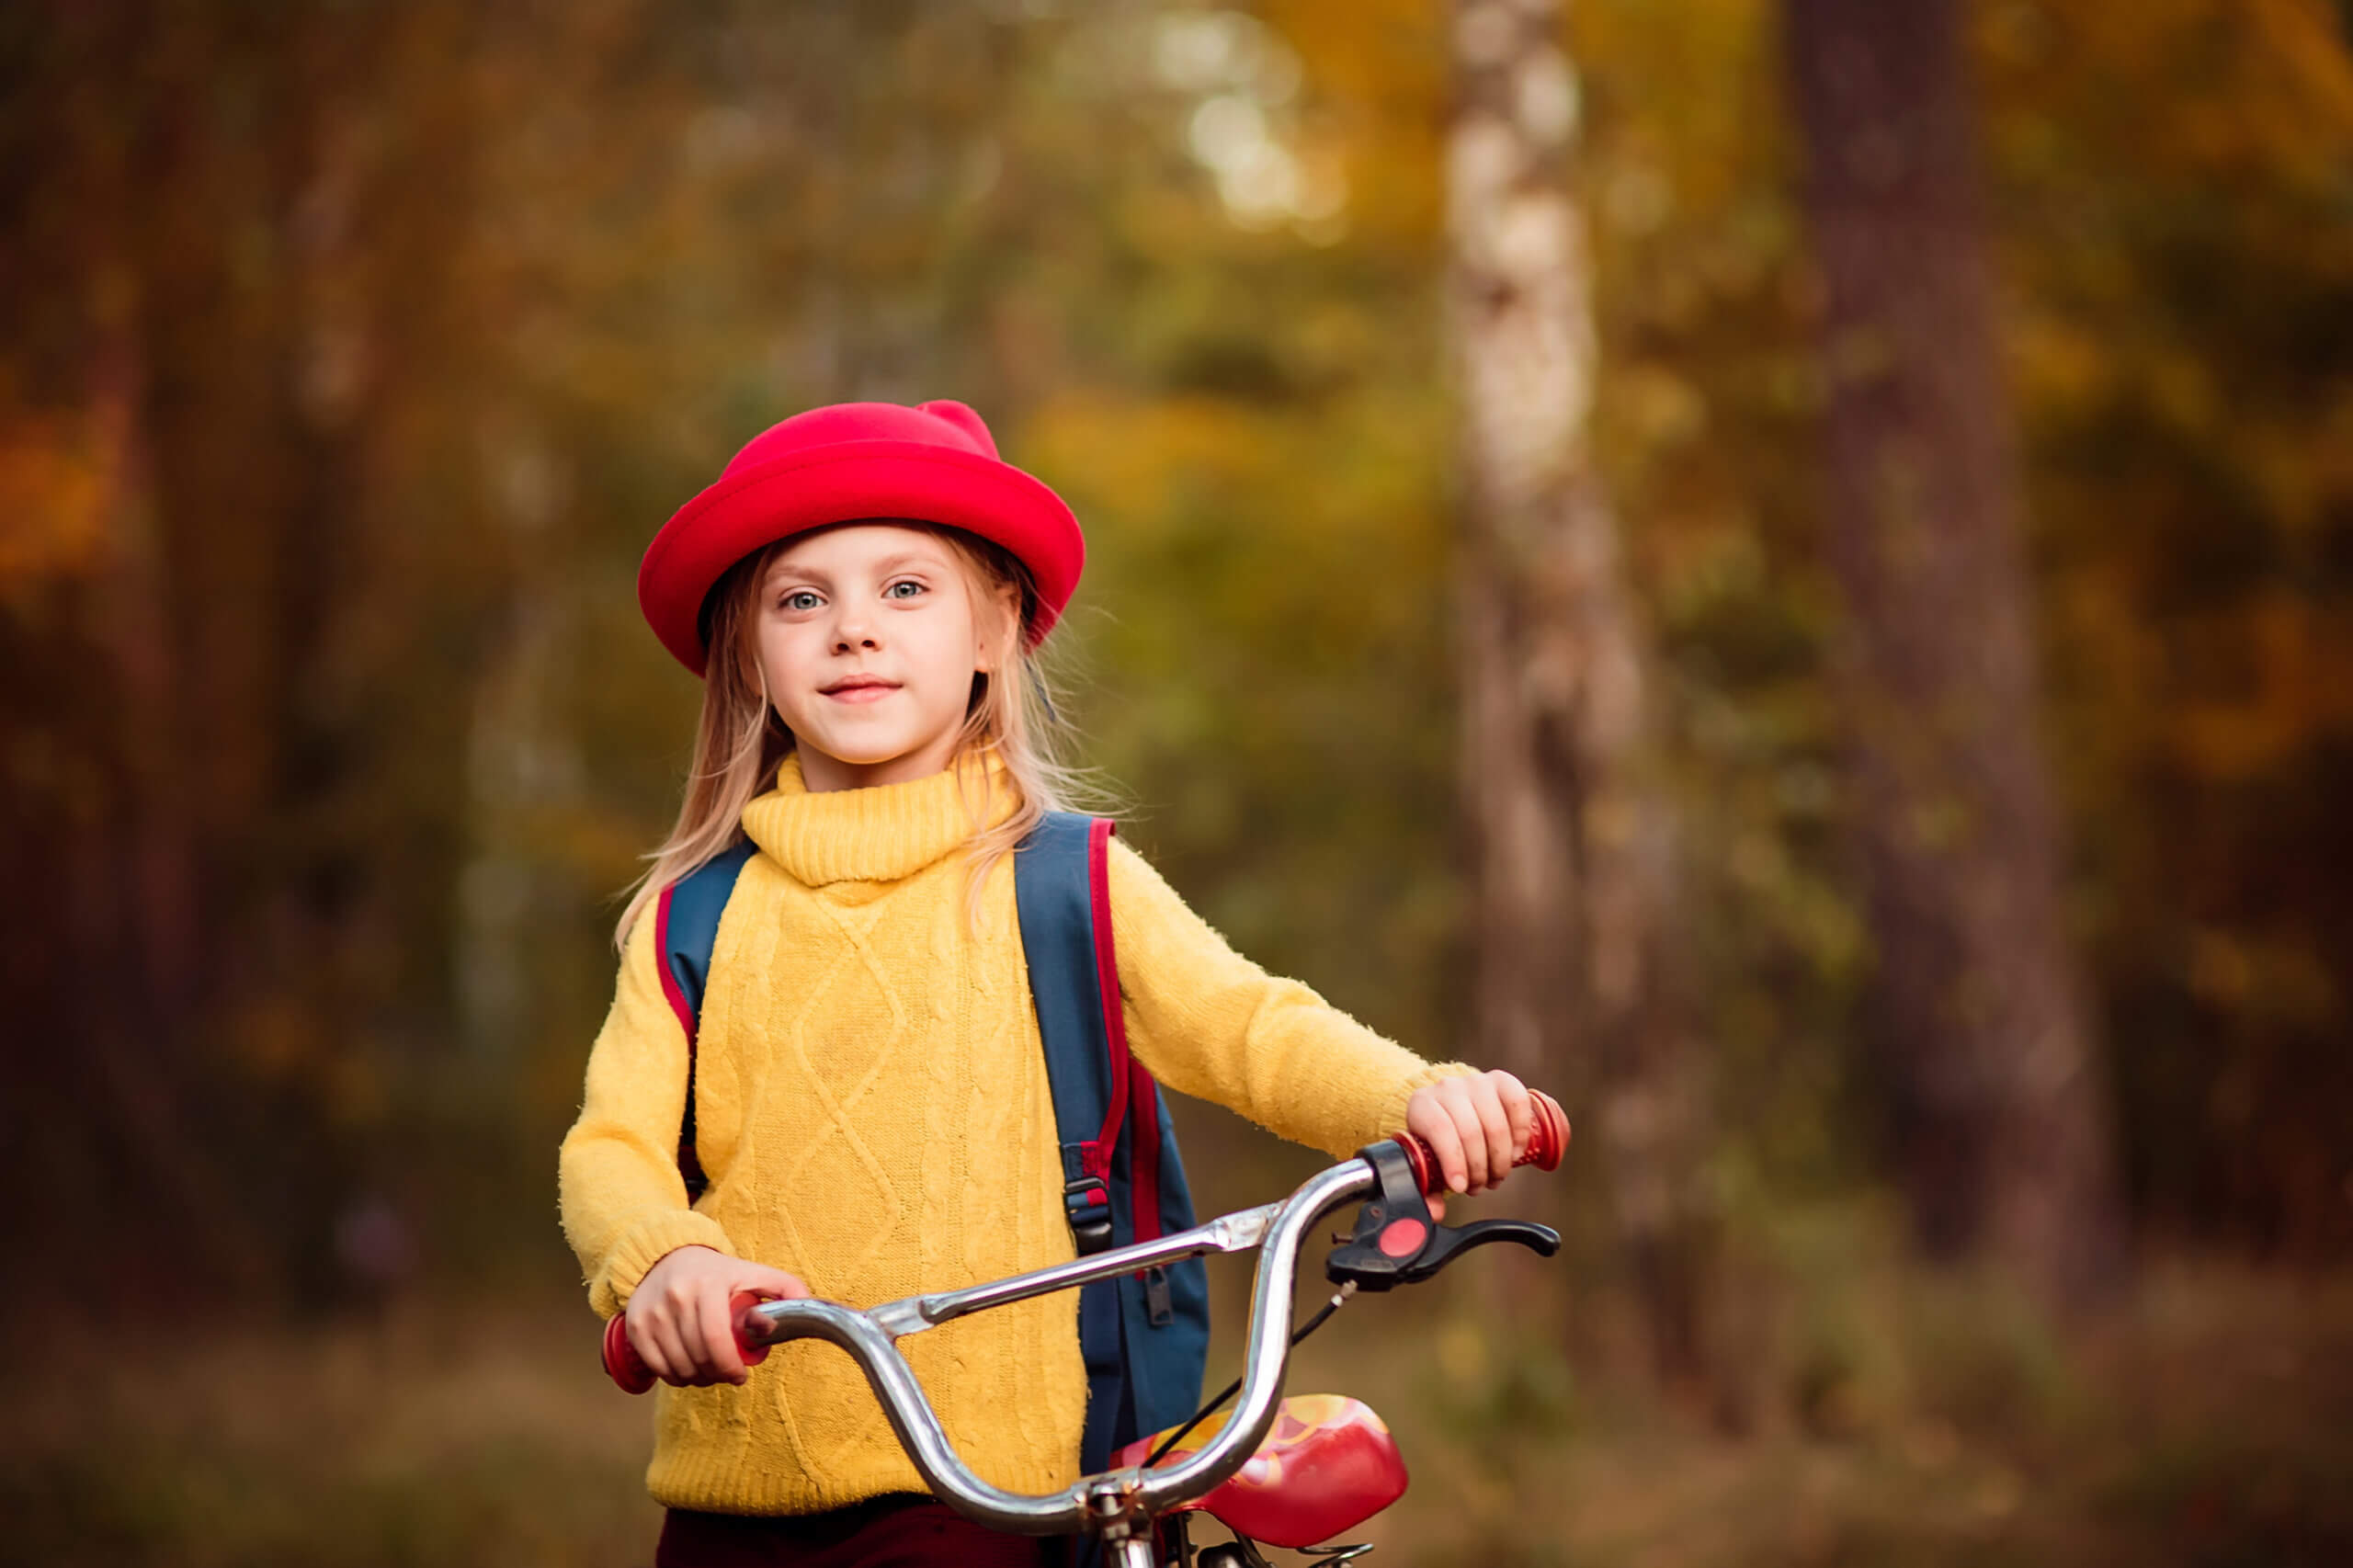 Best Balance Bikes for 6 Year Olds